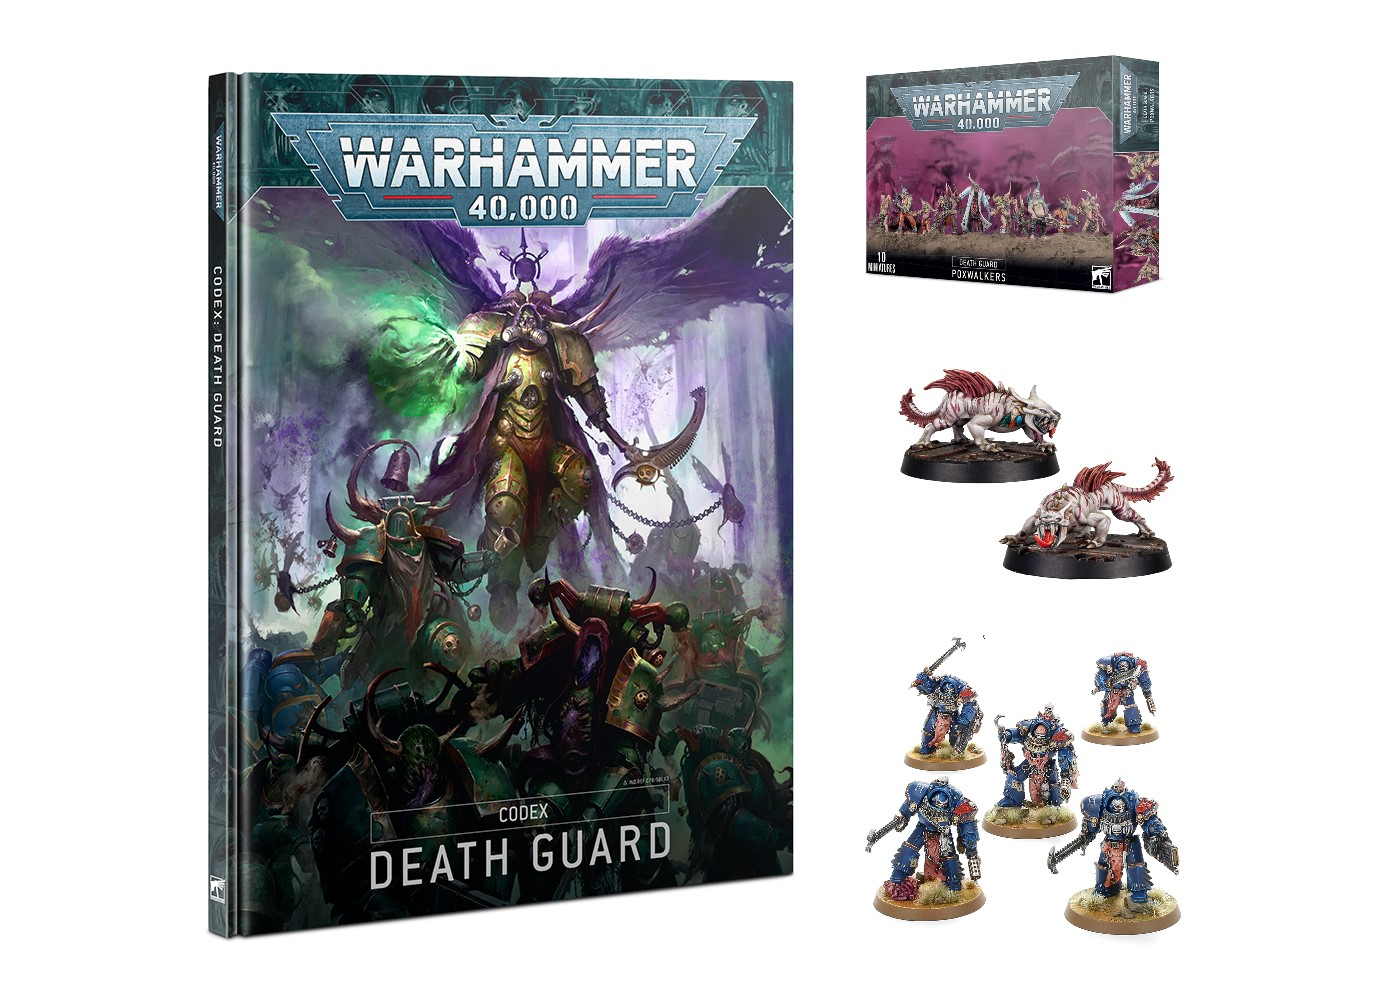 Death Guard, Night Lords, and Phyrr Cats